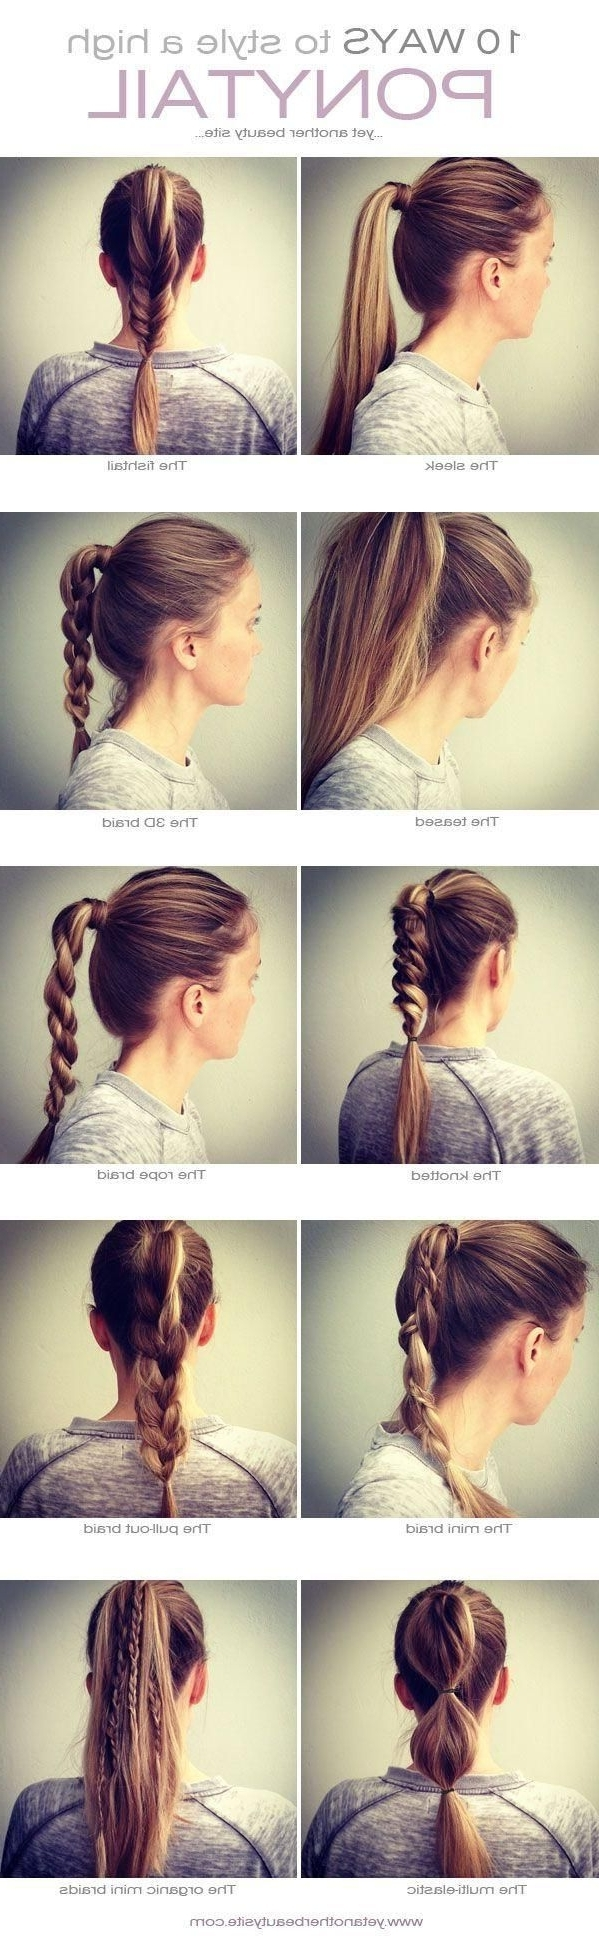 10 Ways To Style A High Ponytail #hairstyle, This Is My Life (View 1 of 20)